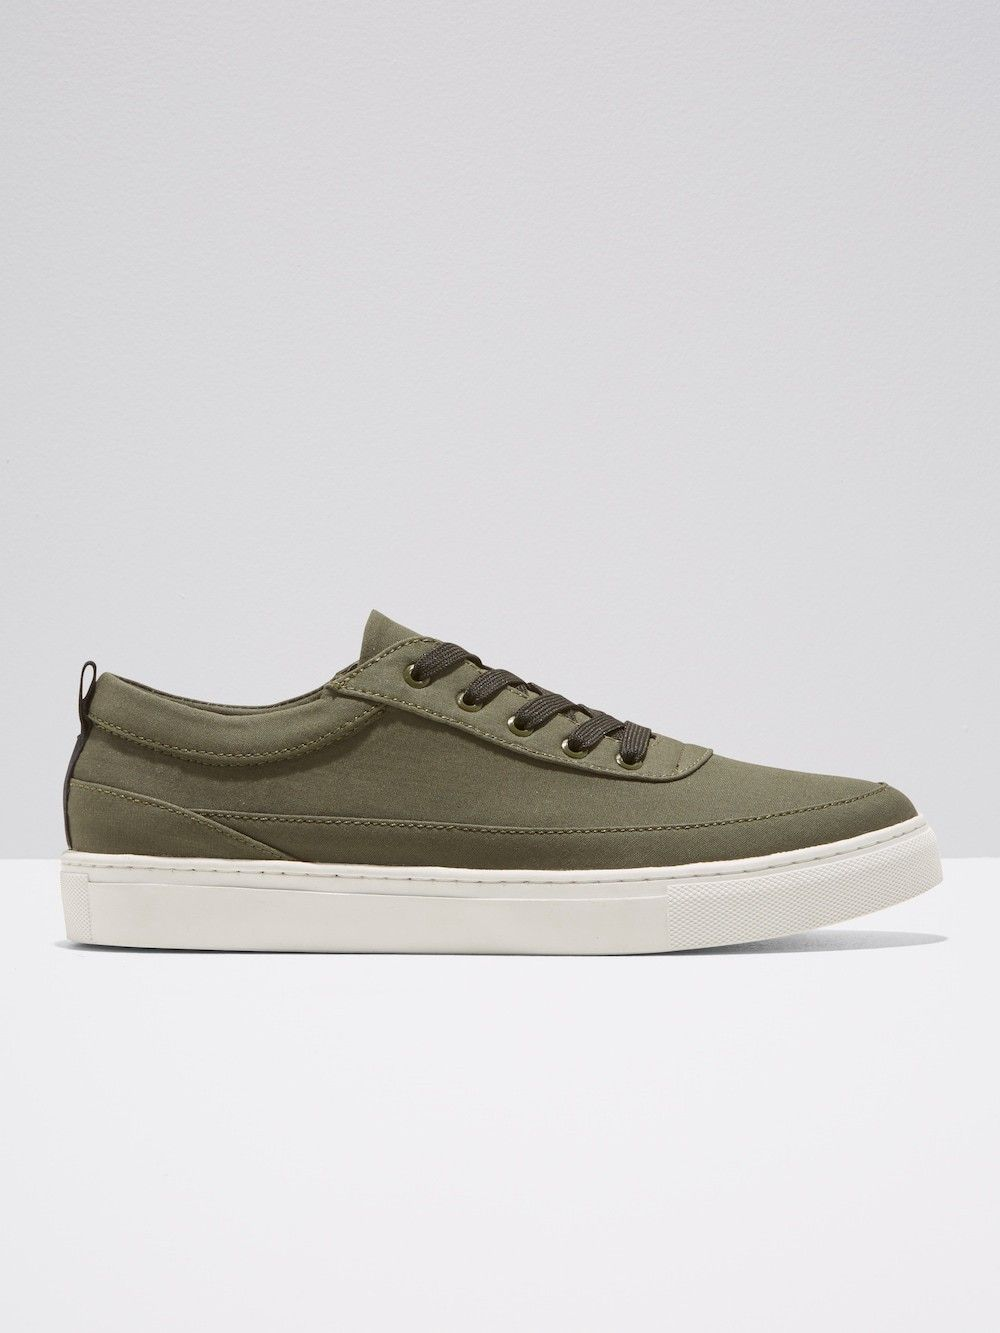 62187710ed2 Yeezy Women s Crepe Sneaker In Washed Canvas